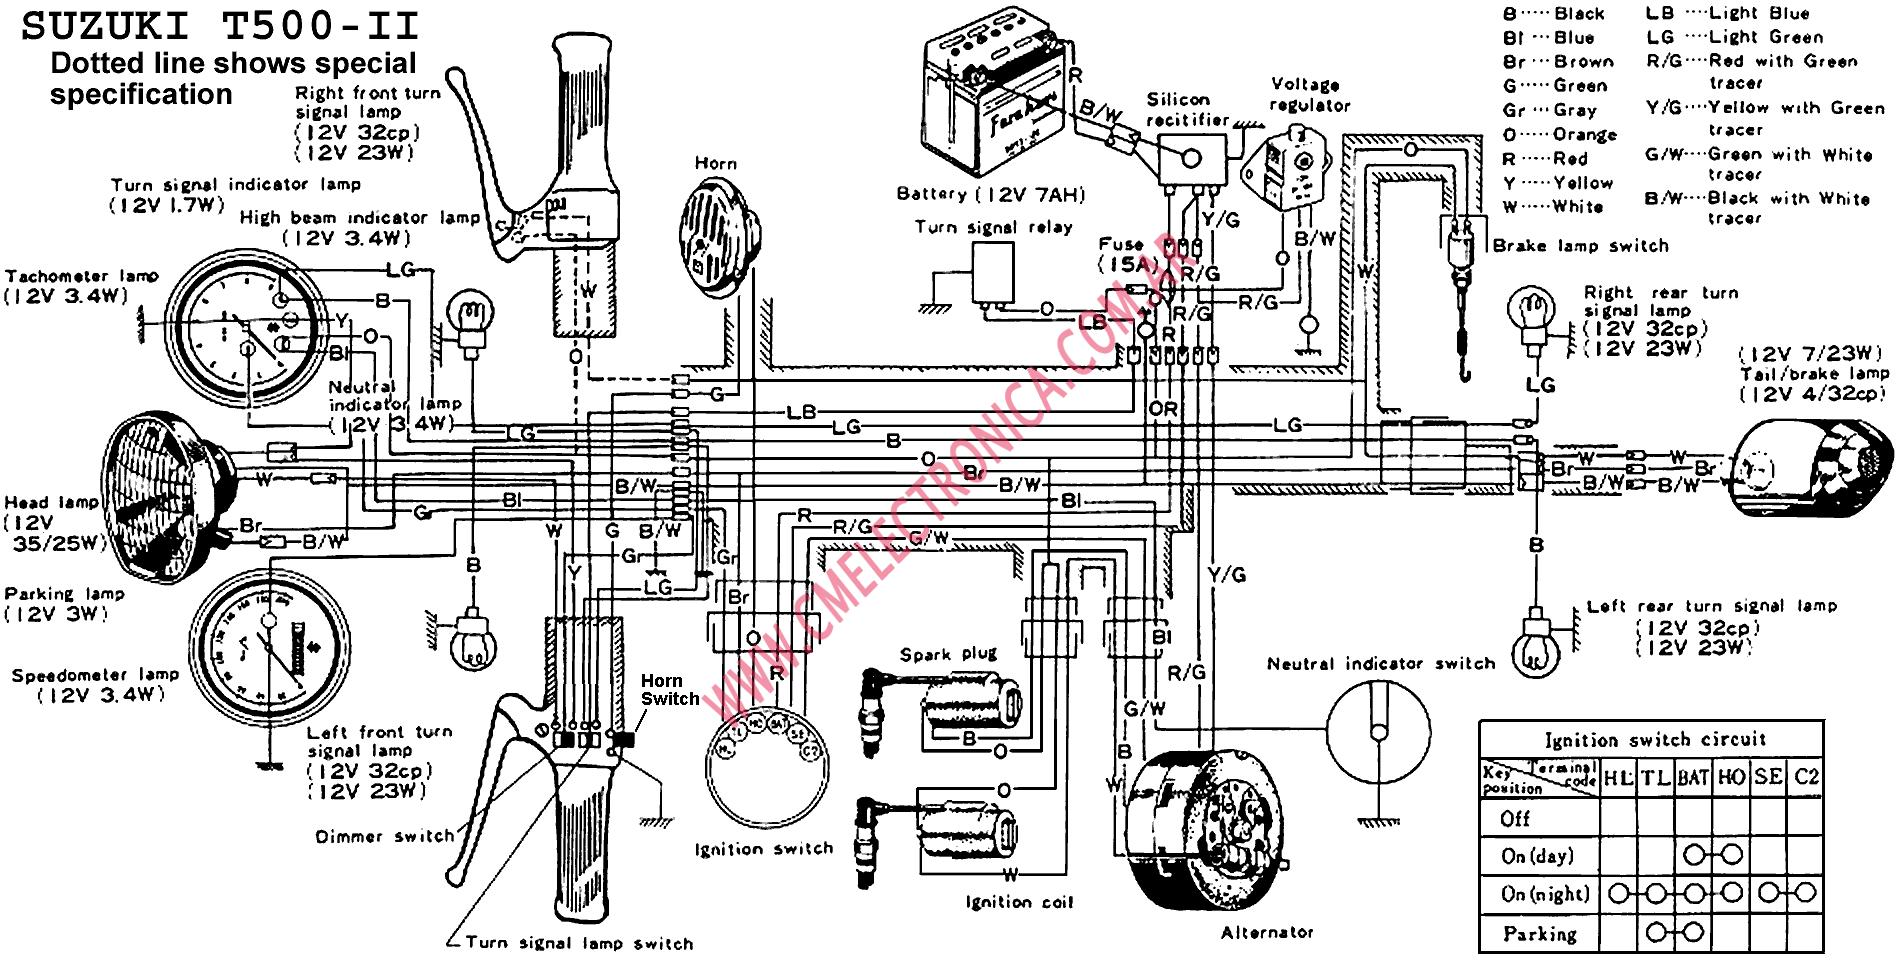 hight resolution of suzuki k15 wiring diagram 25 wiring diagram images ar 15 exploded parts diagram ar